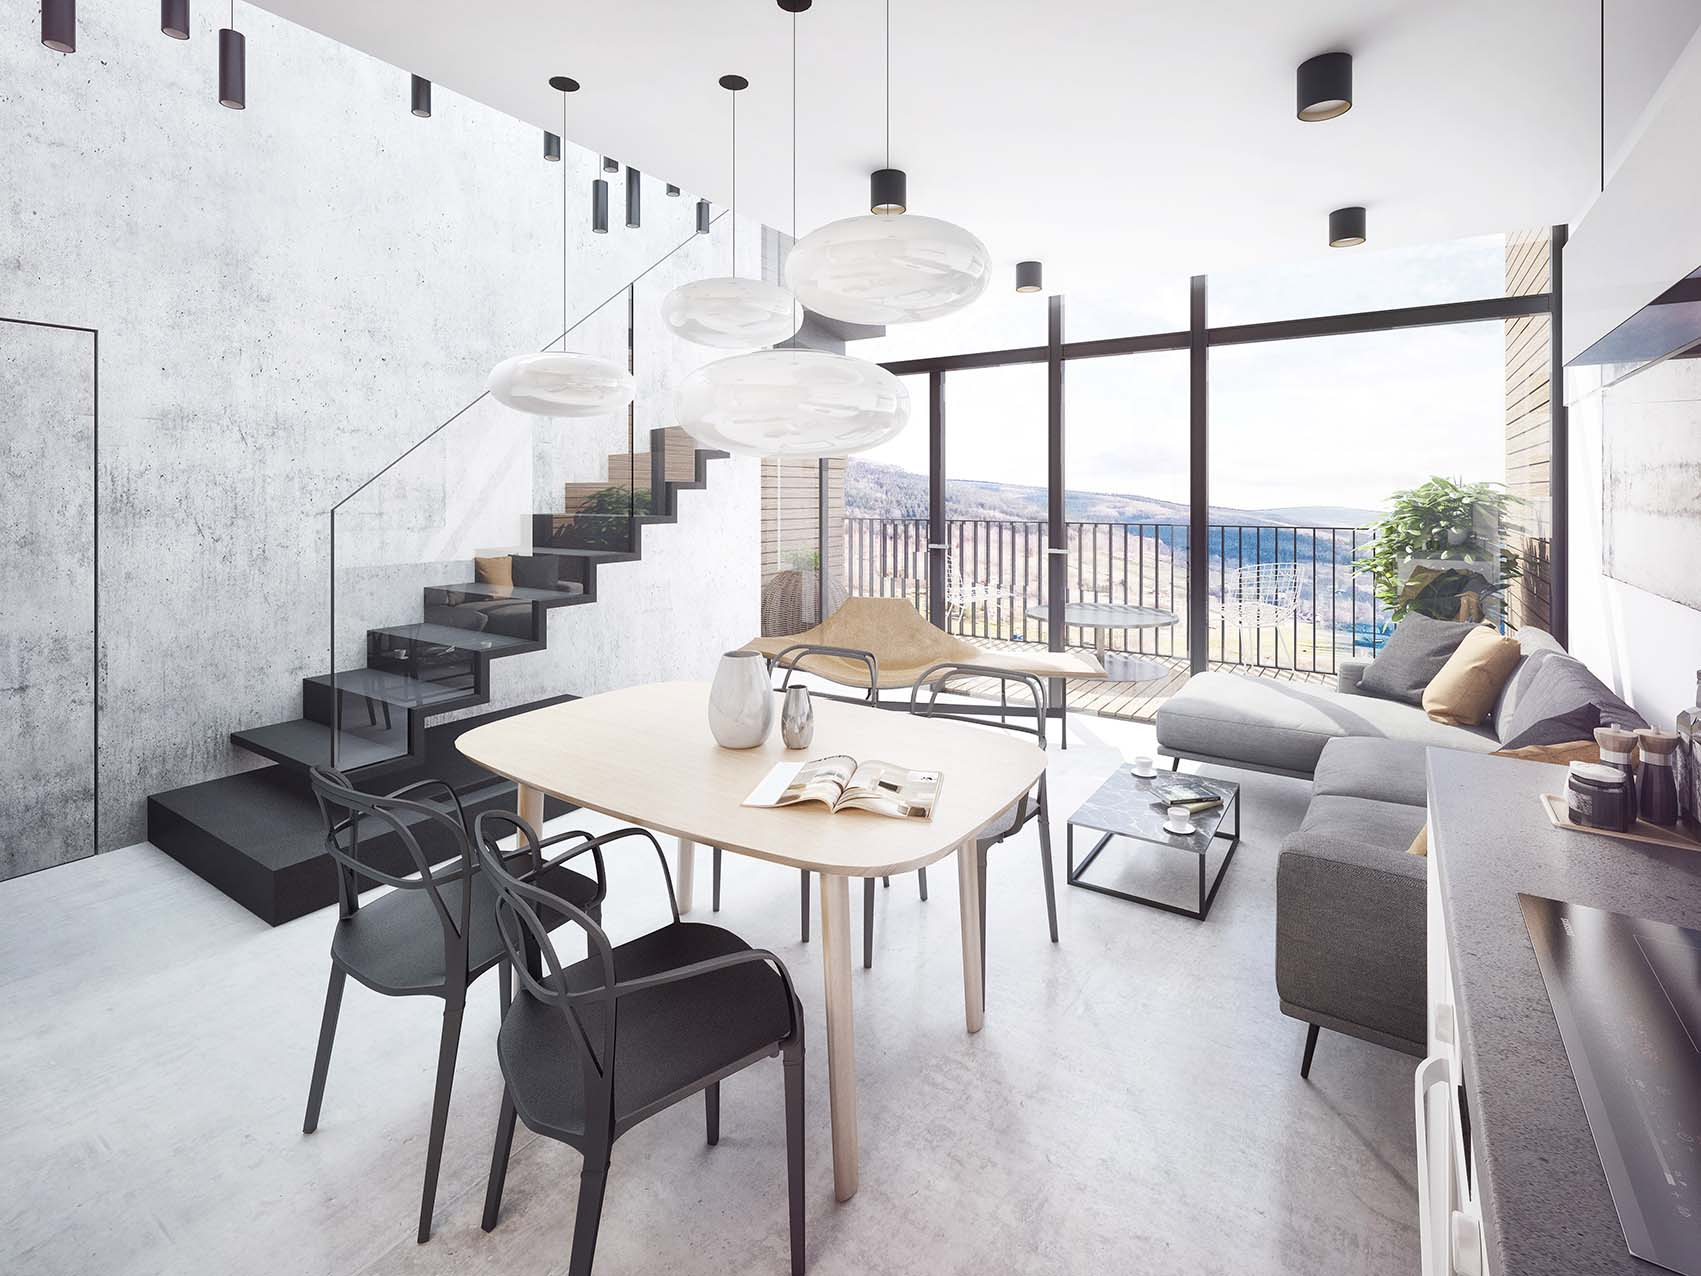 Interior design of the model larger apartment in the mountains.